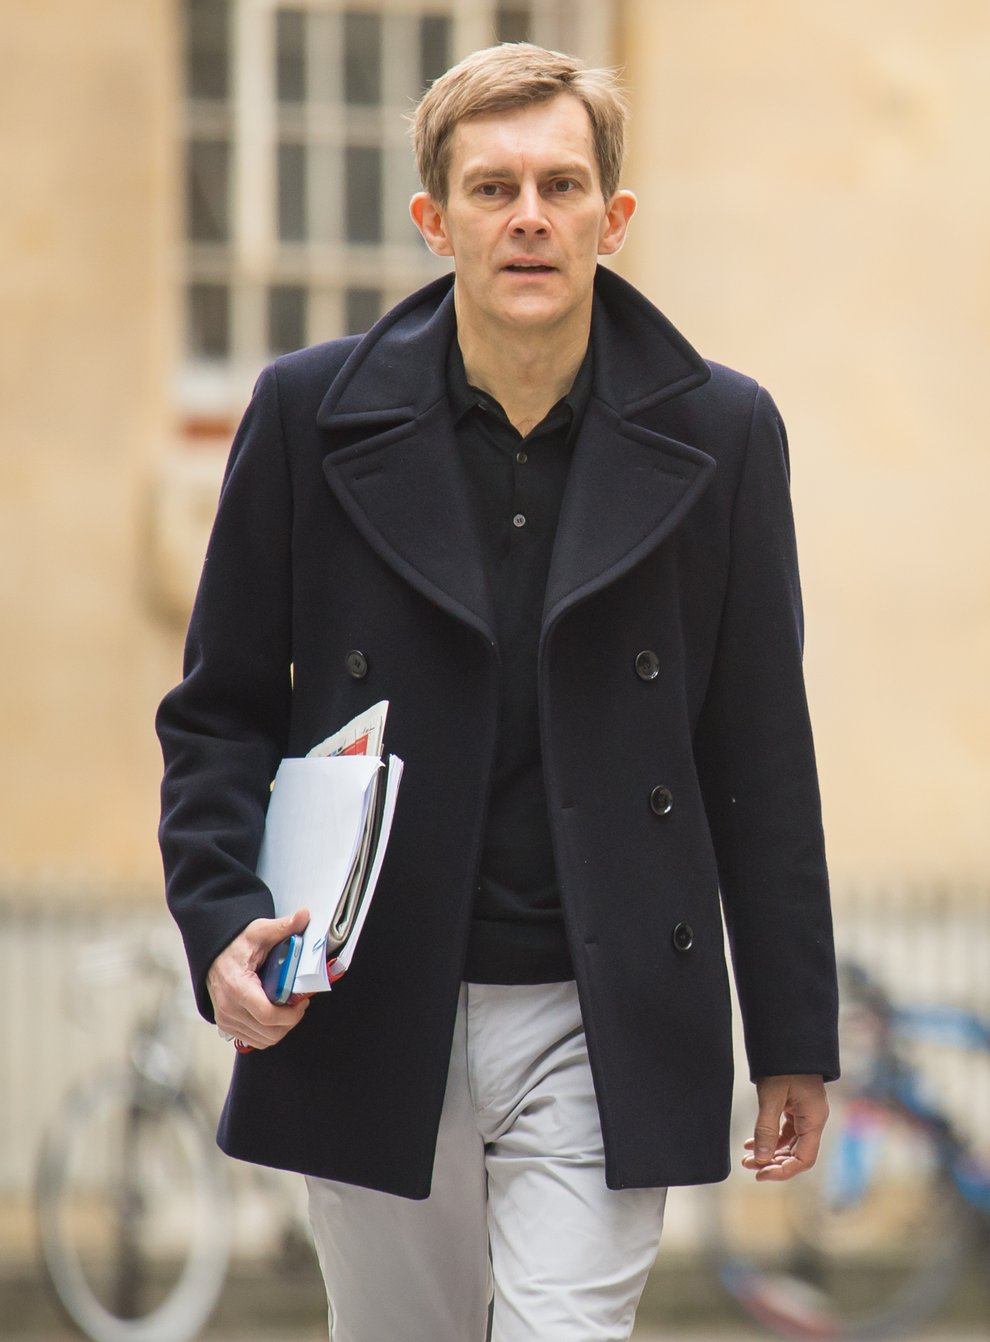 Former Labour Director of Strategy and Communications Seumas Milne is among five who have denied leaking the report (Dominic Lipinski/PA)